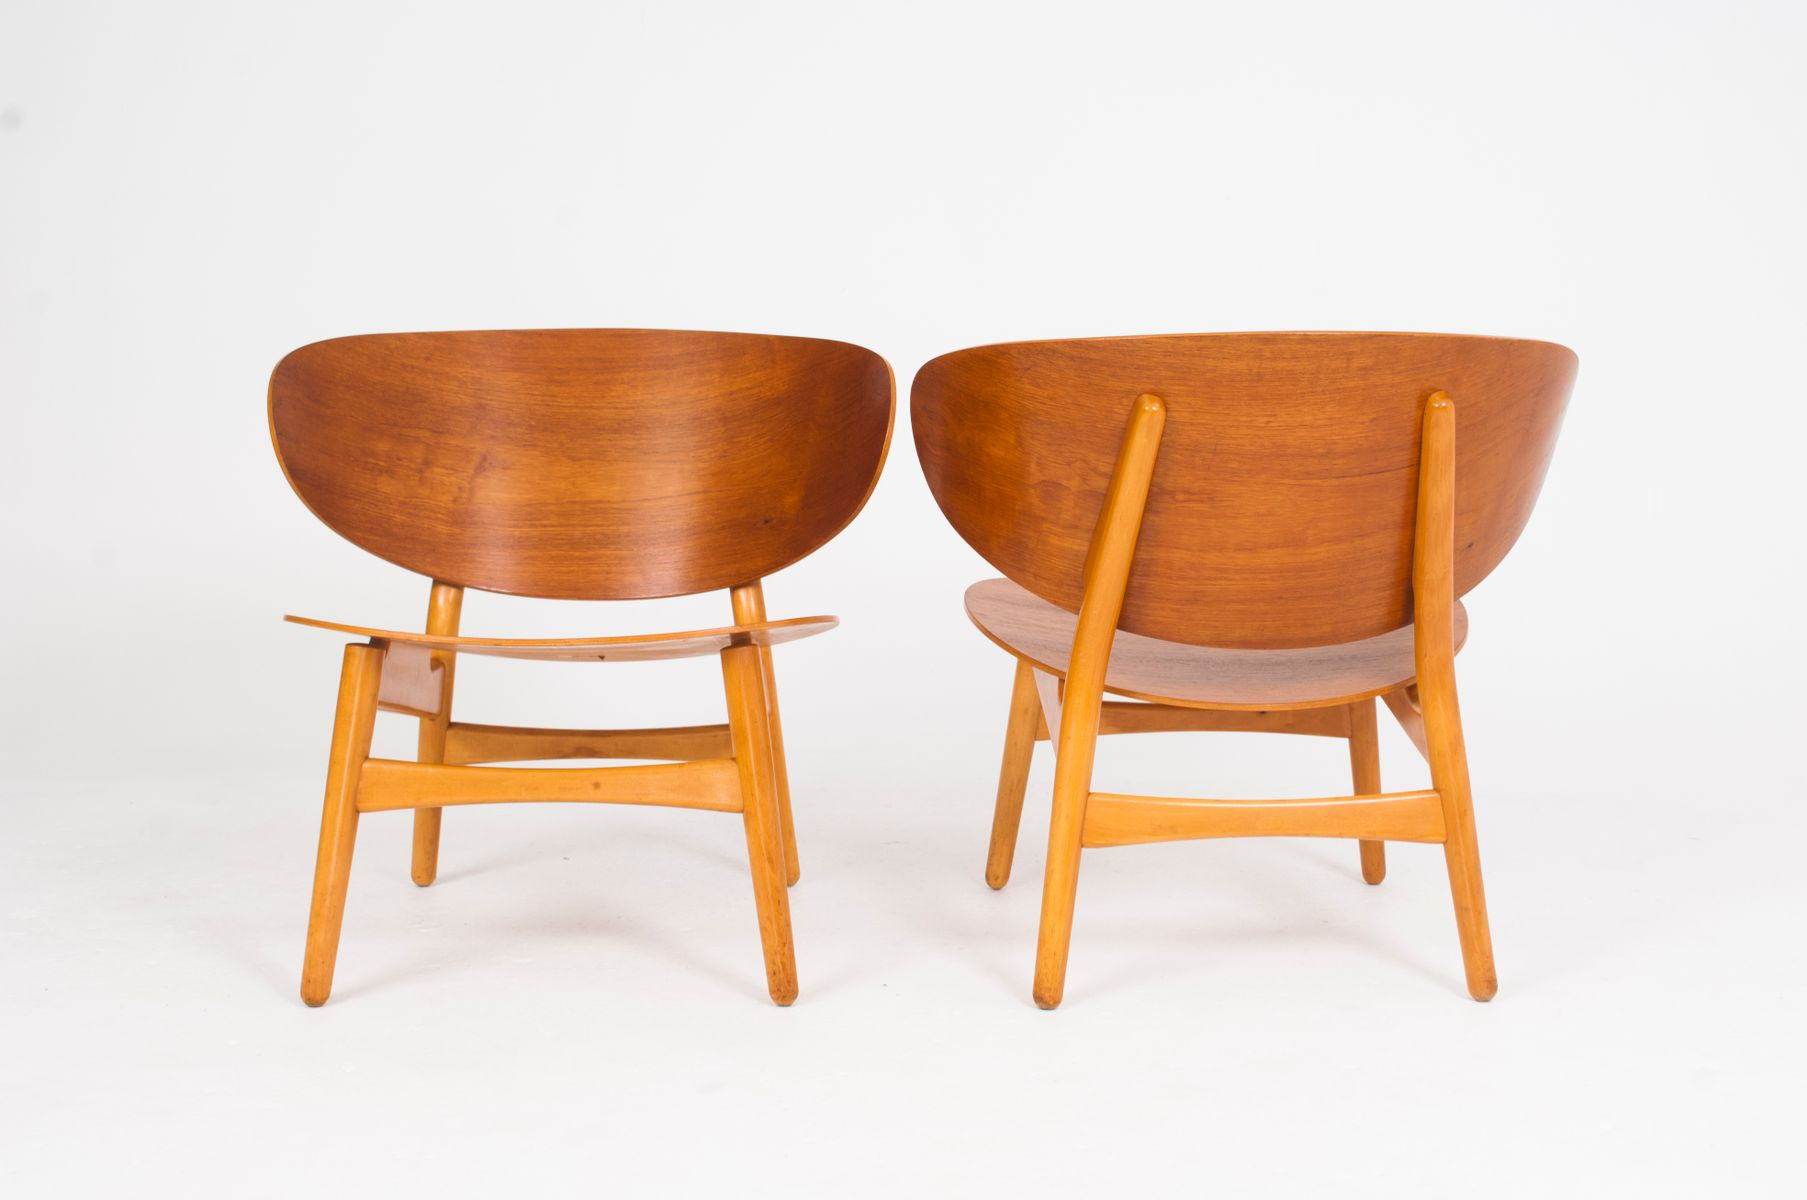 fh1936 shell chairs by hans j wegner for fritz hansen set of 2 for sale at pamono. Black Bedroom Furniture Sets. Home Design Ideas